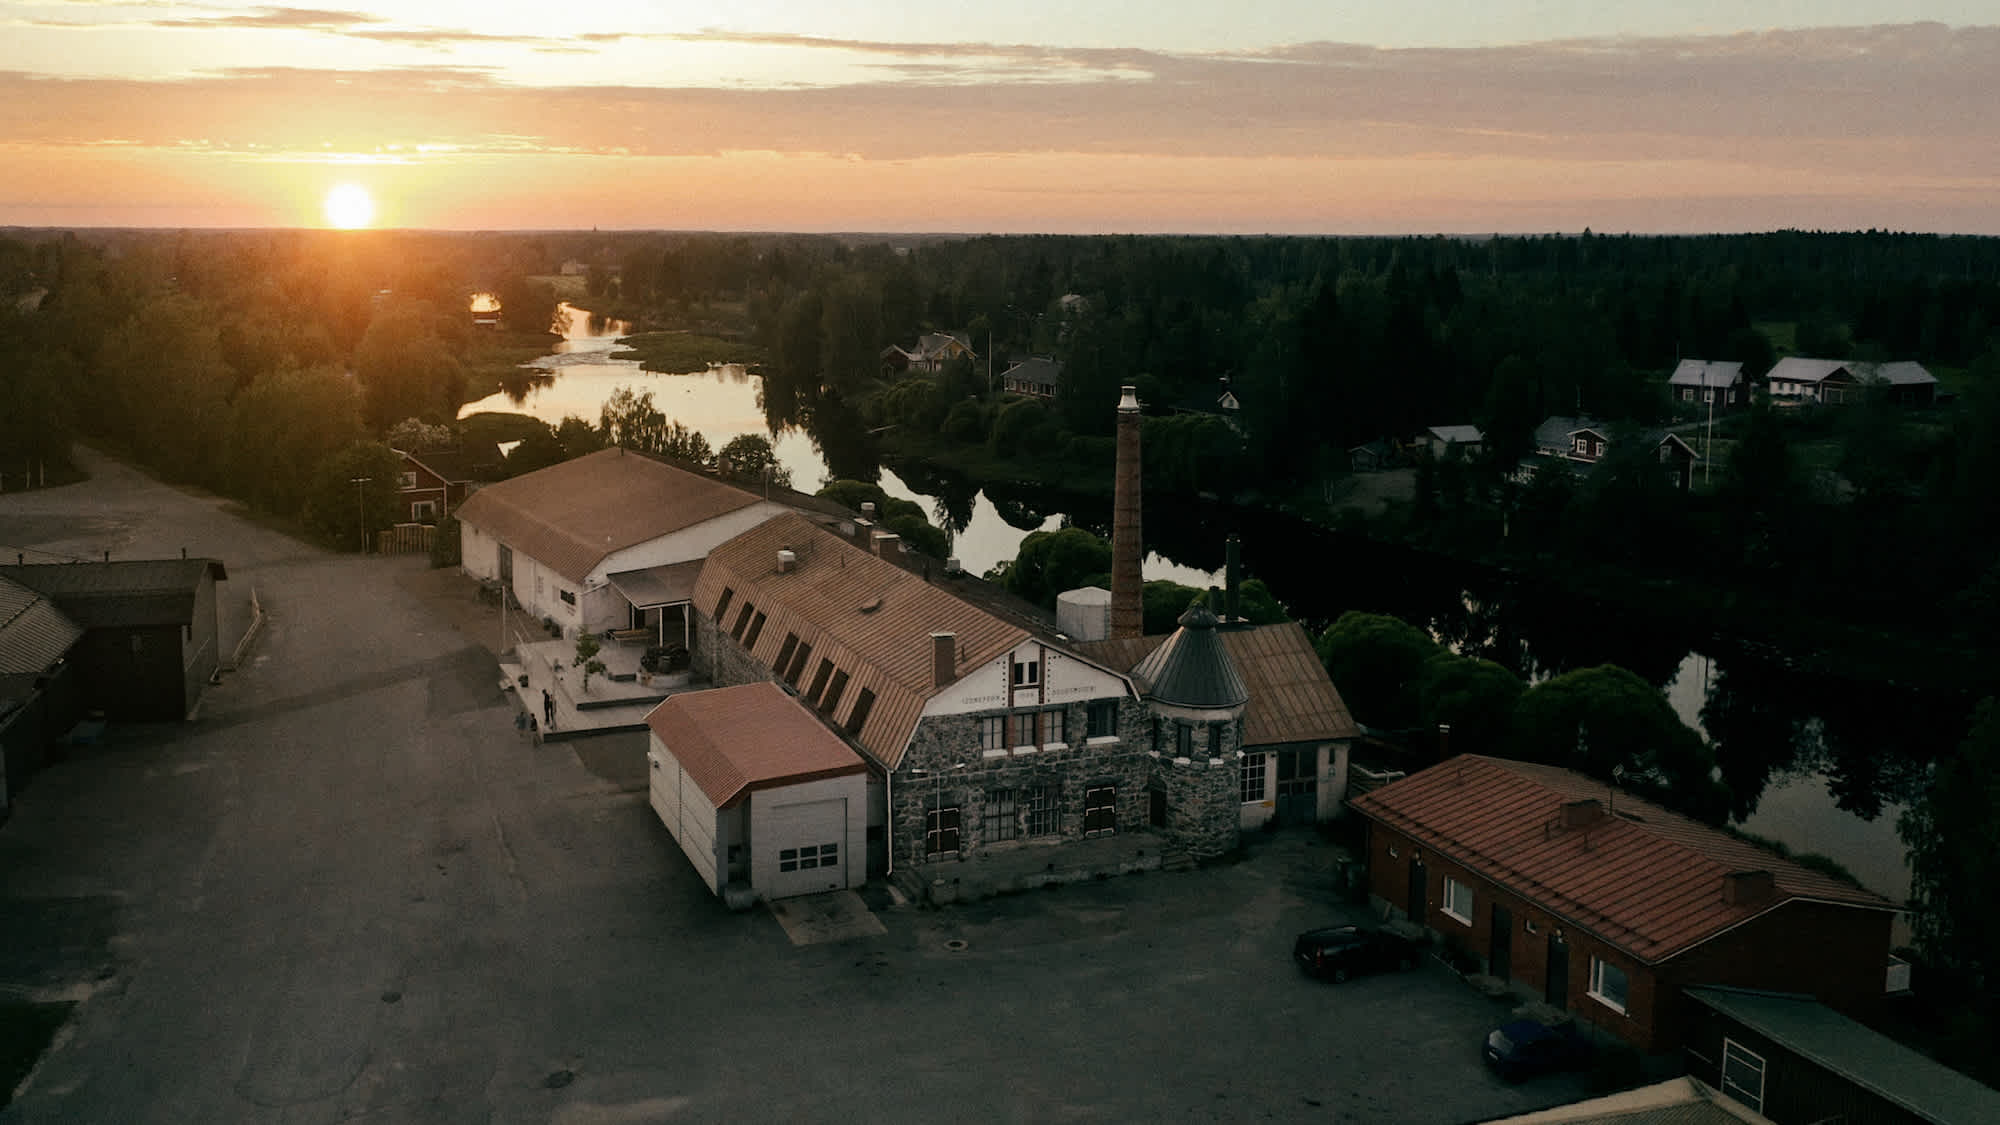 Image of Kyrö Distillery from above during sunset.